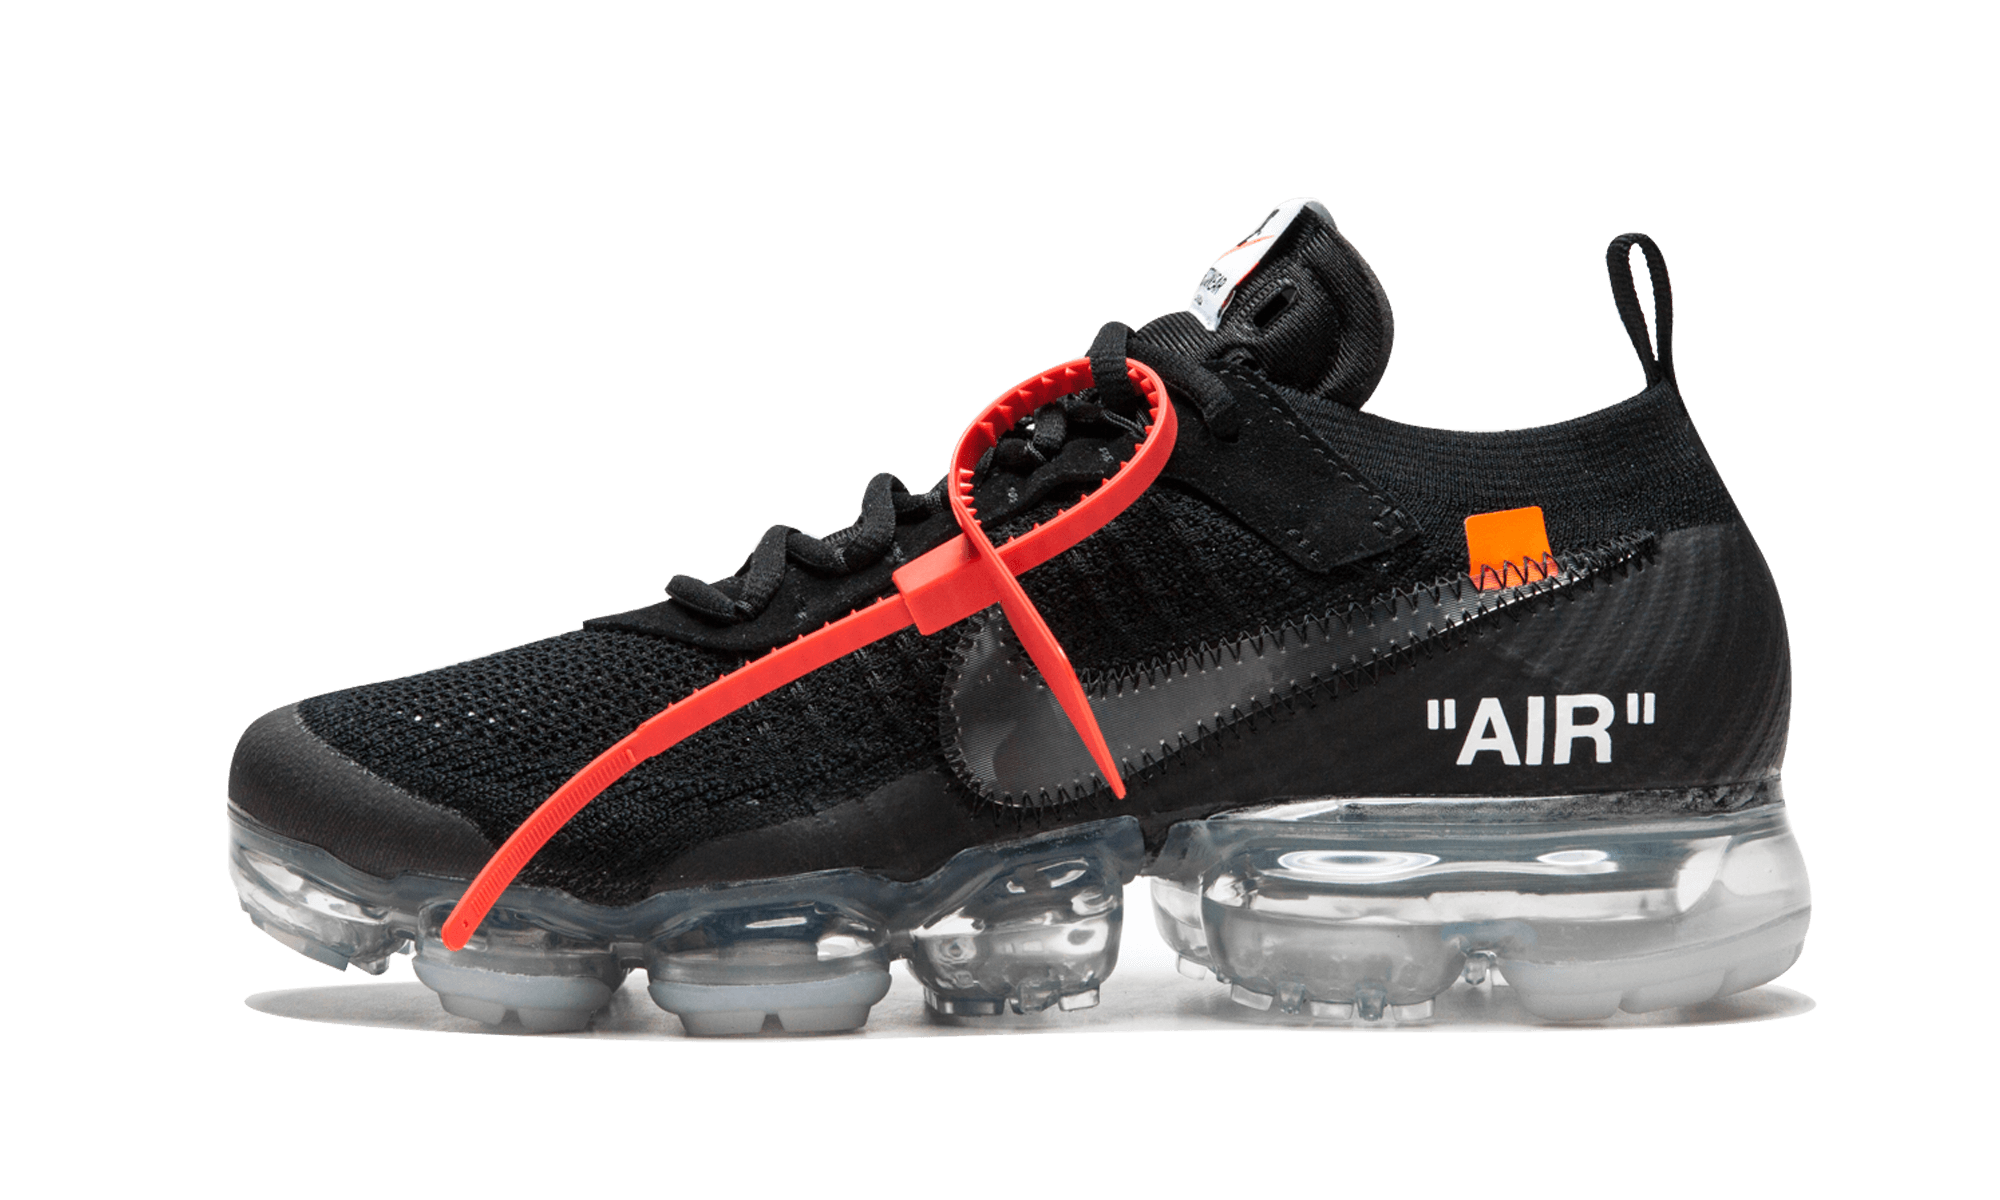 exótico Grapa Eclipse solar  Fancy | Off-White x Nike Vapormax 2.0 | White nike shoes, New nike shoes, Nike  air vapormax